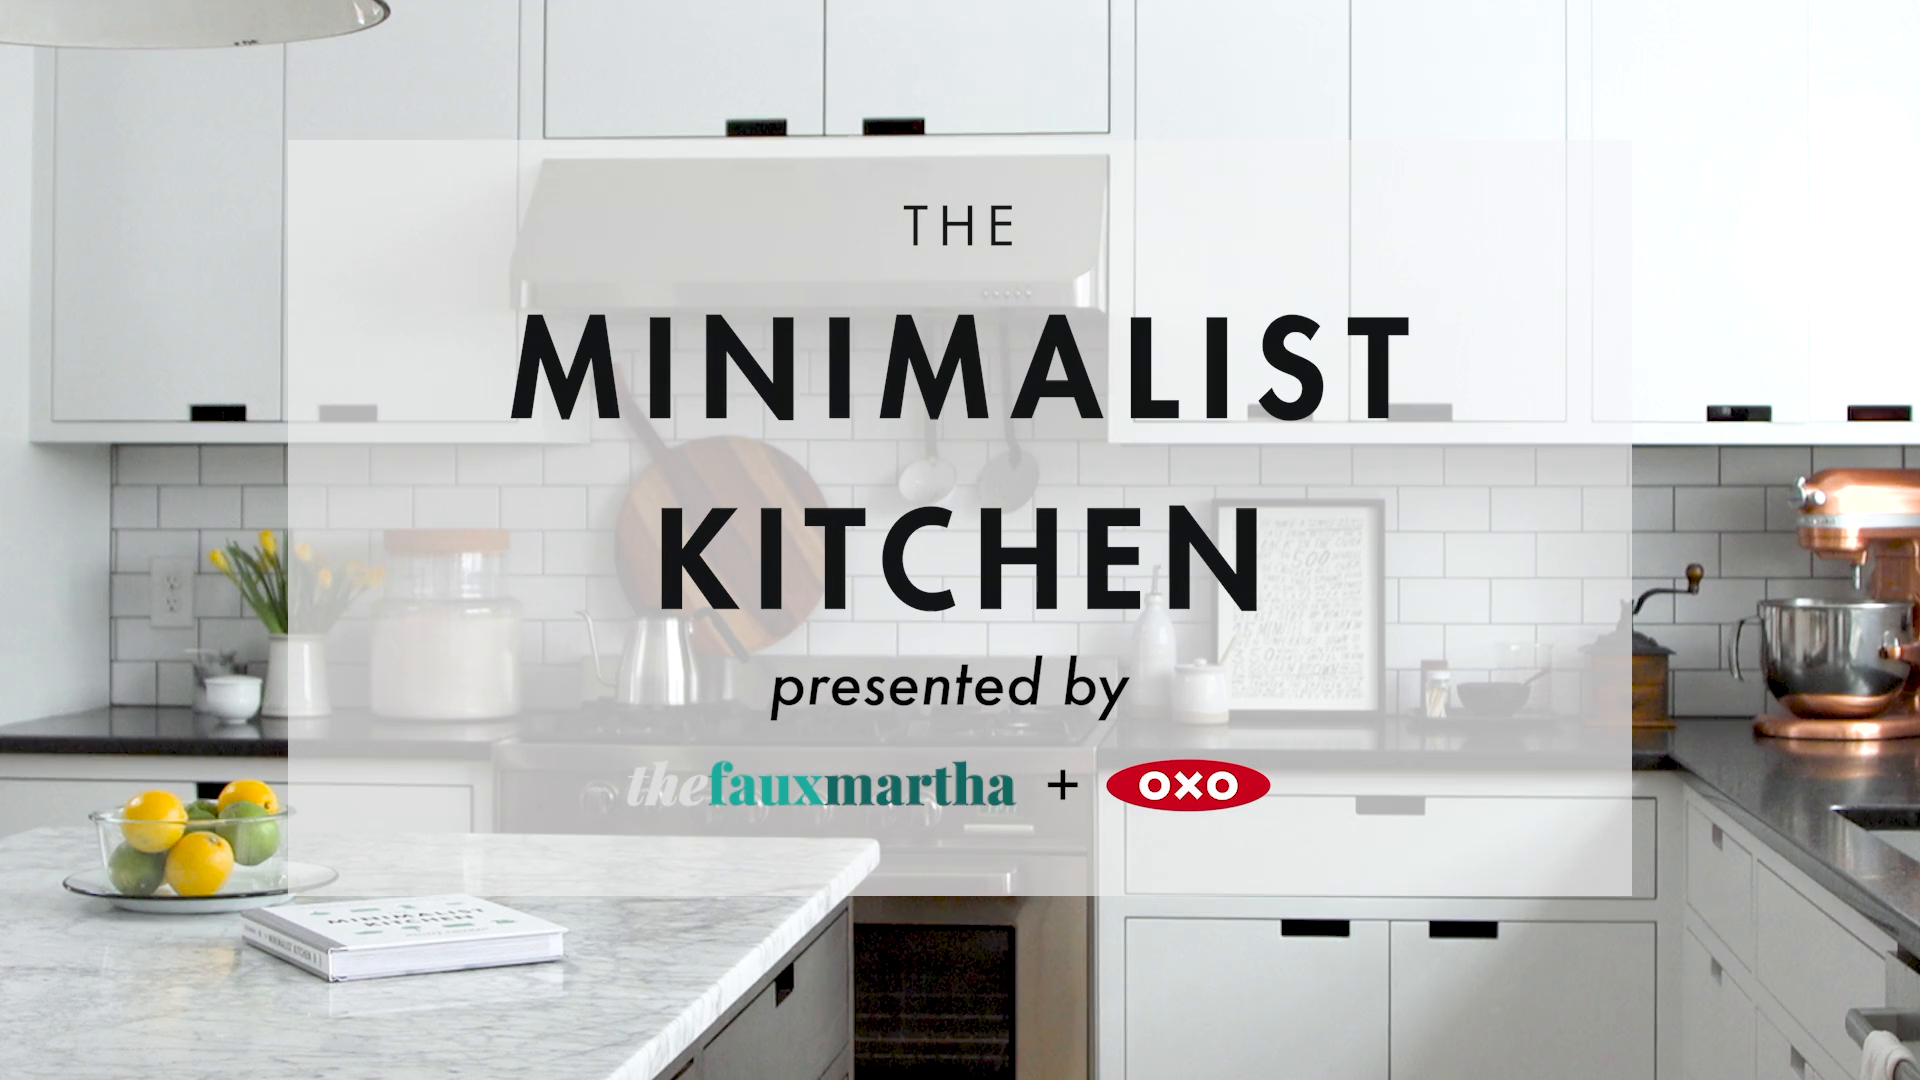 The Minimalist Kitchen: 100 Wholesome Recipes, Essential Tools, and ...